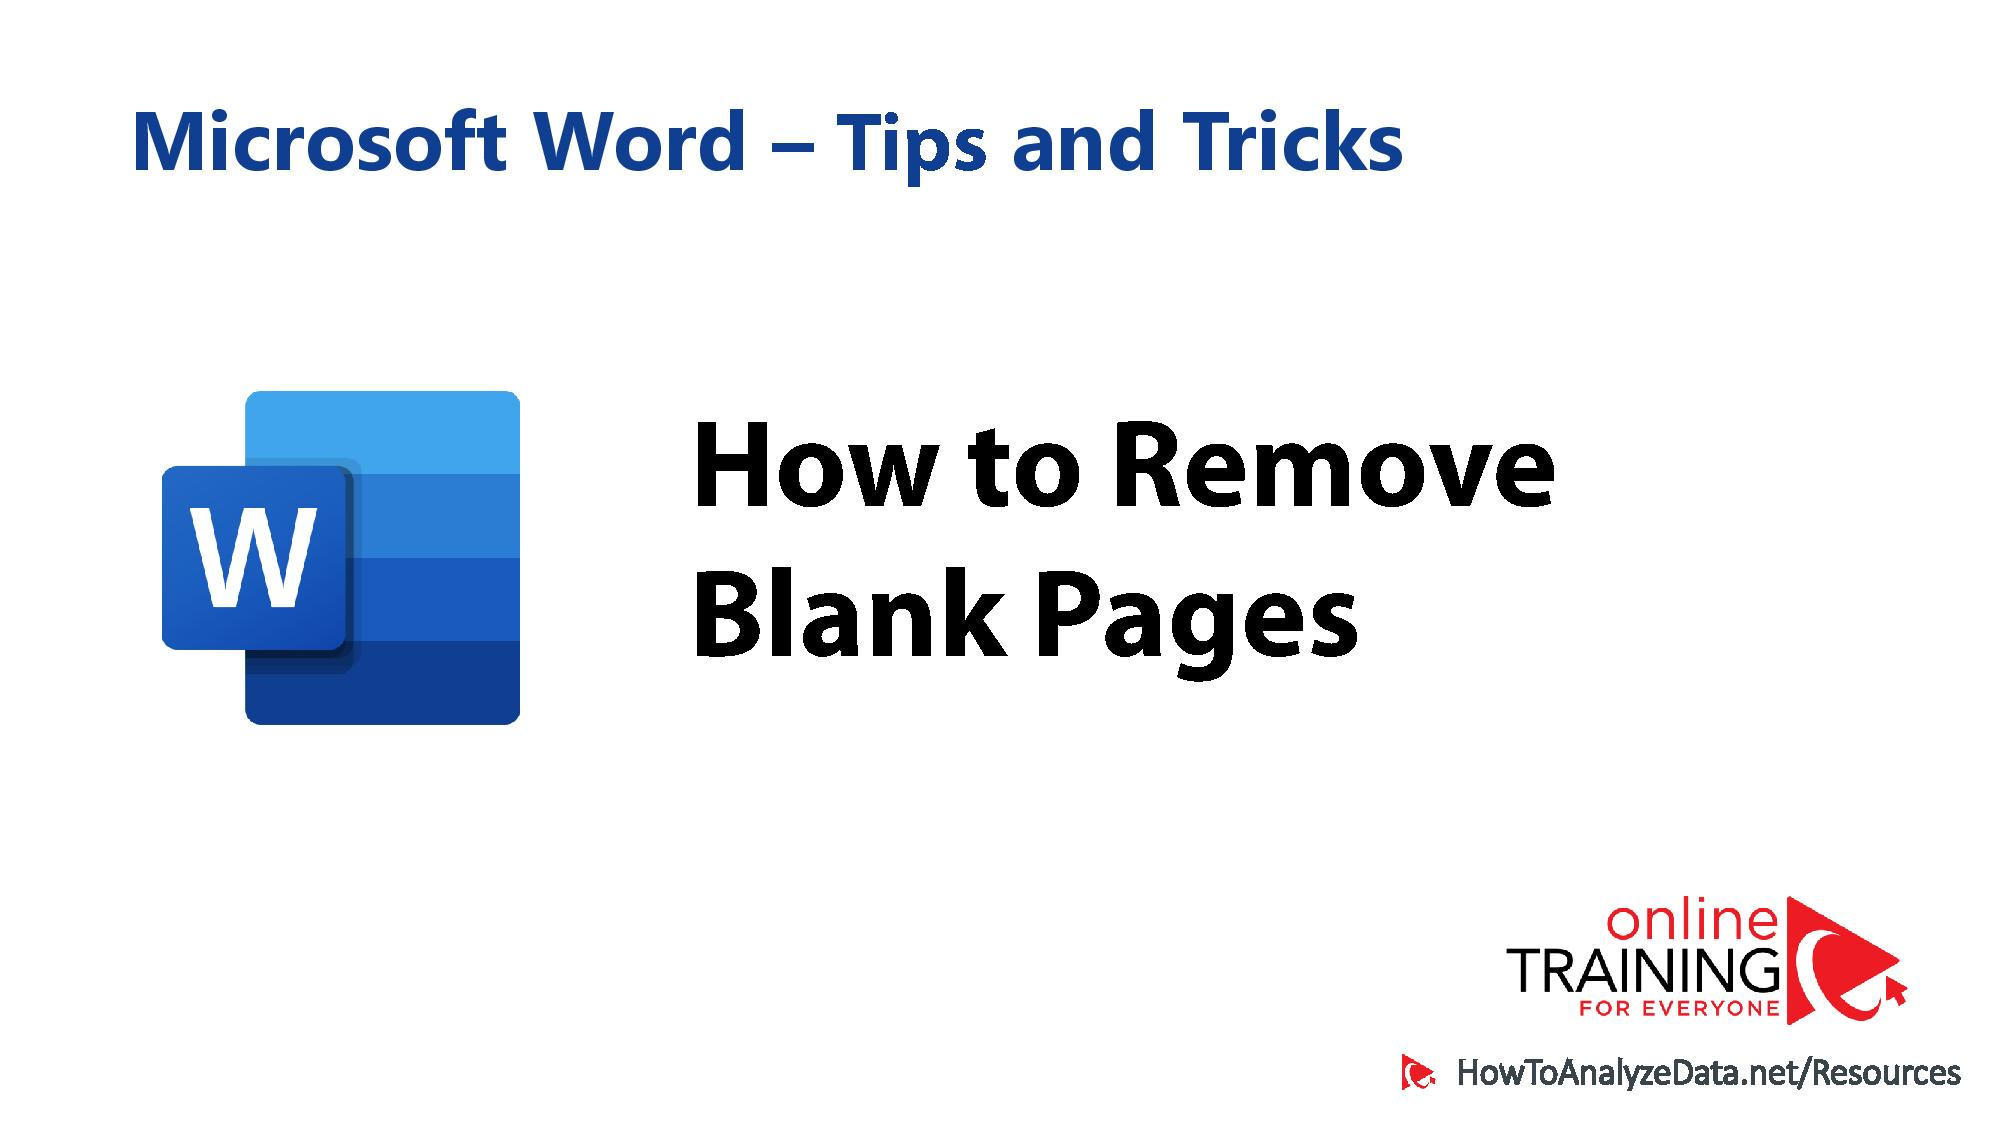 How to remove blank pages in Word